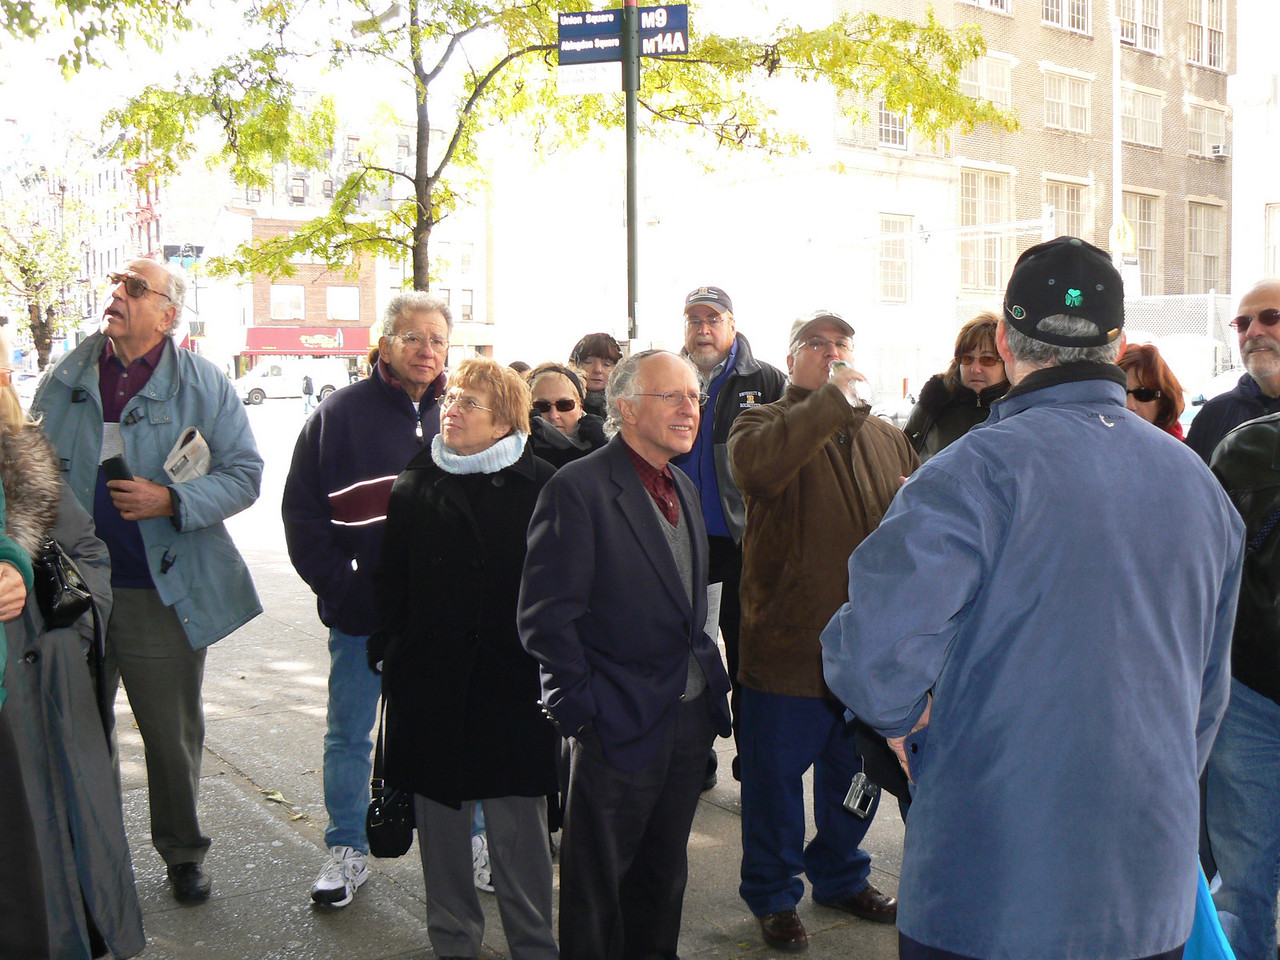 Listening to the guide in front of the Bnai Brith sign (next photo)